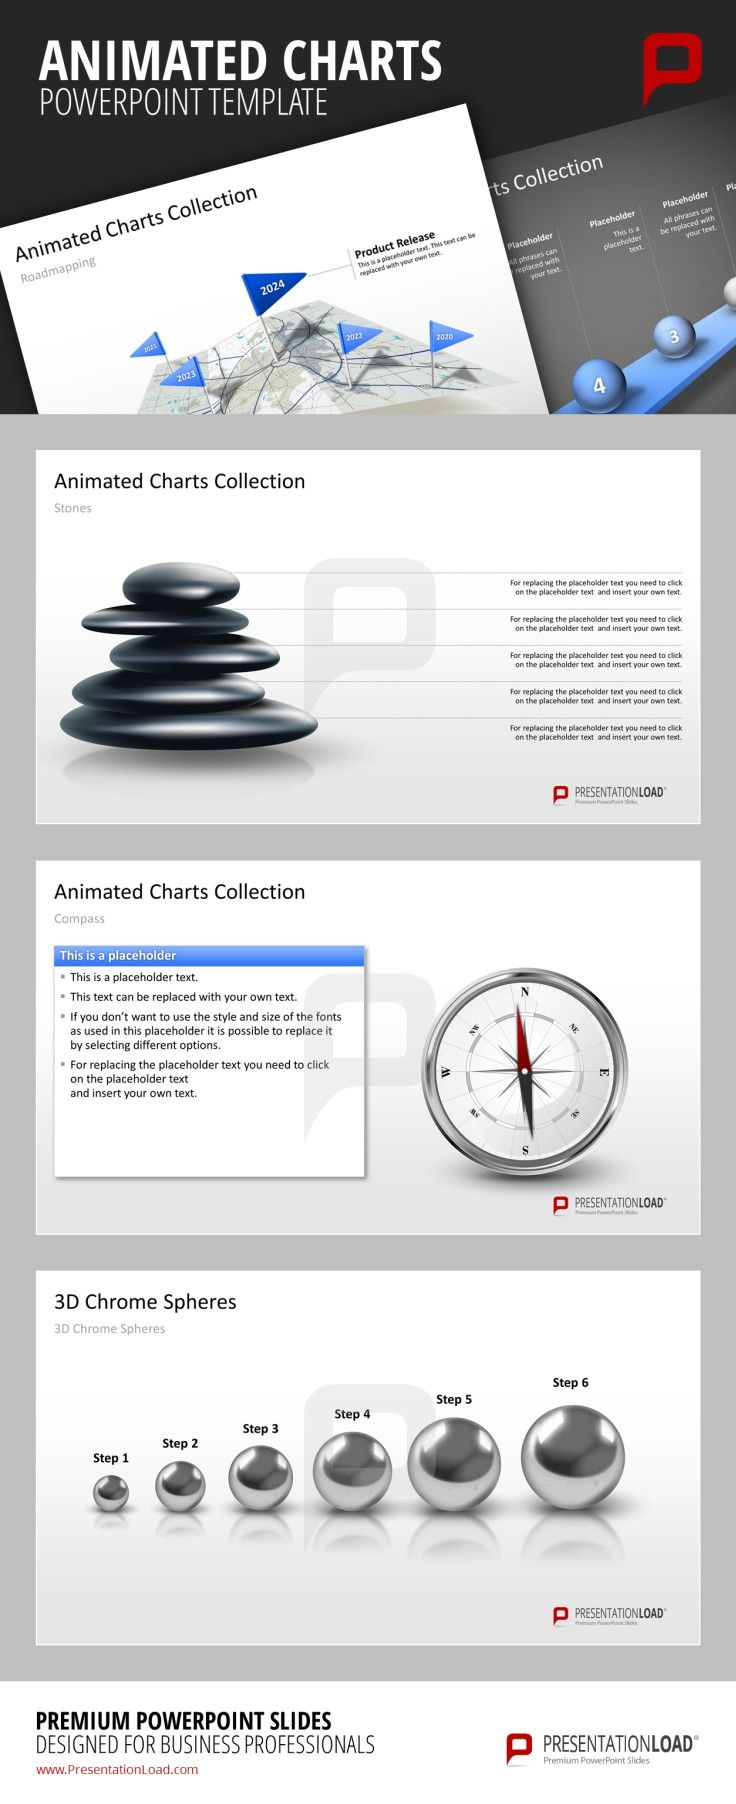 15 best animation powerpoint templates images on pinterest animated powerpoint templates the animated charts collection for powerpoint contains a broad variety of animated charts toneelgroepblik Choice Image